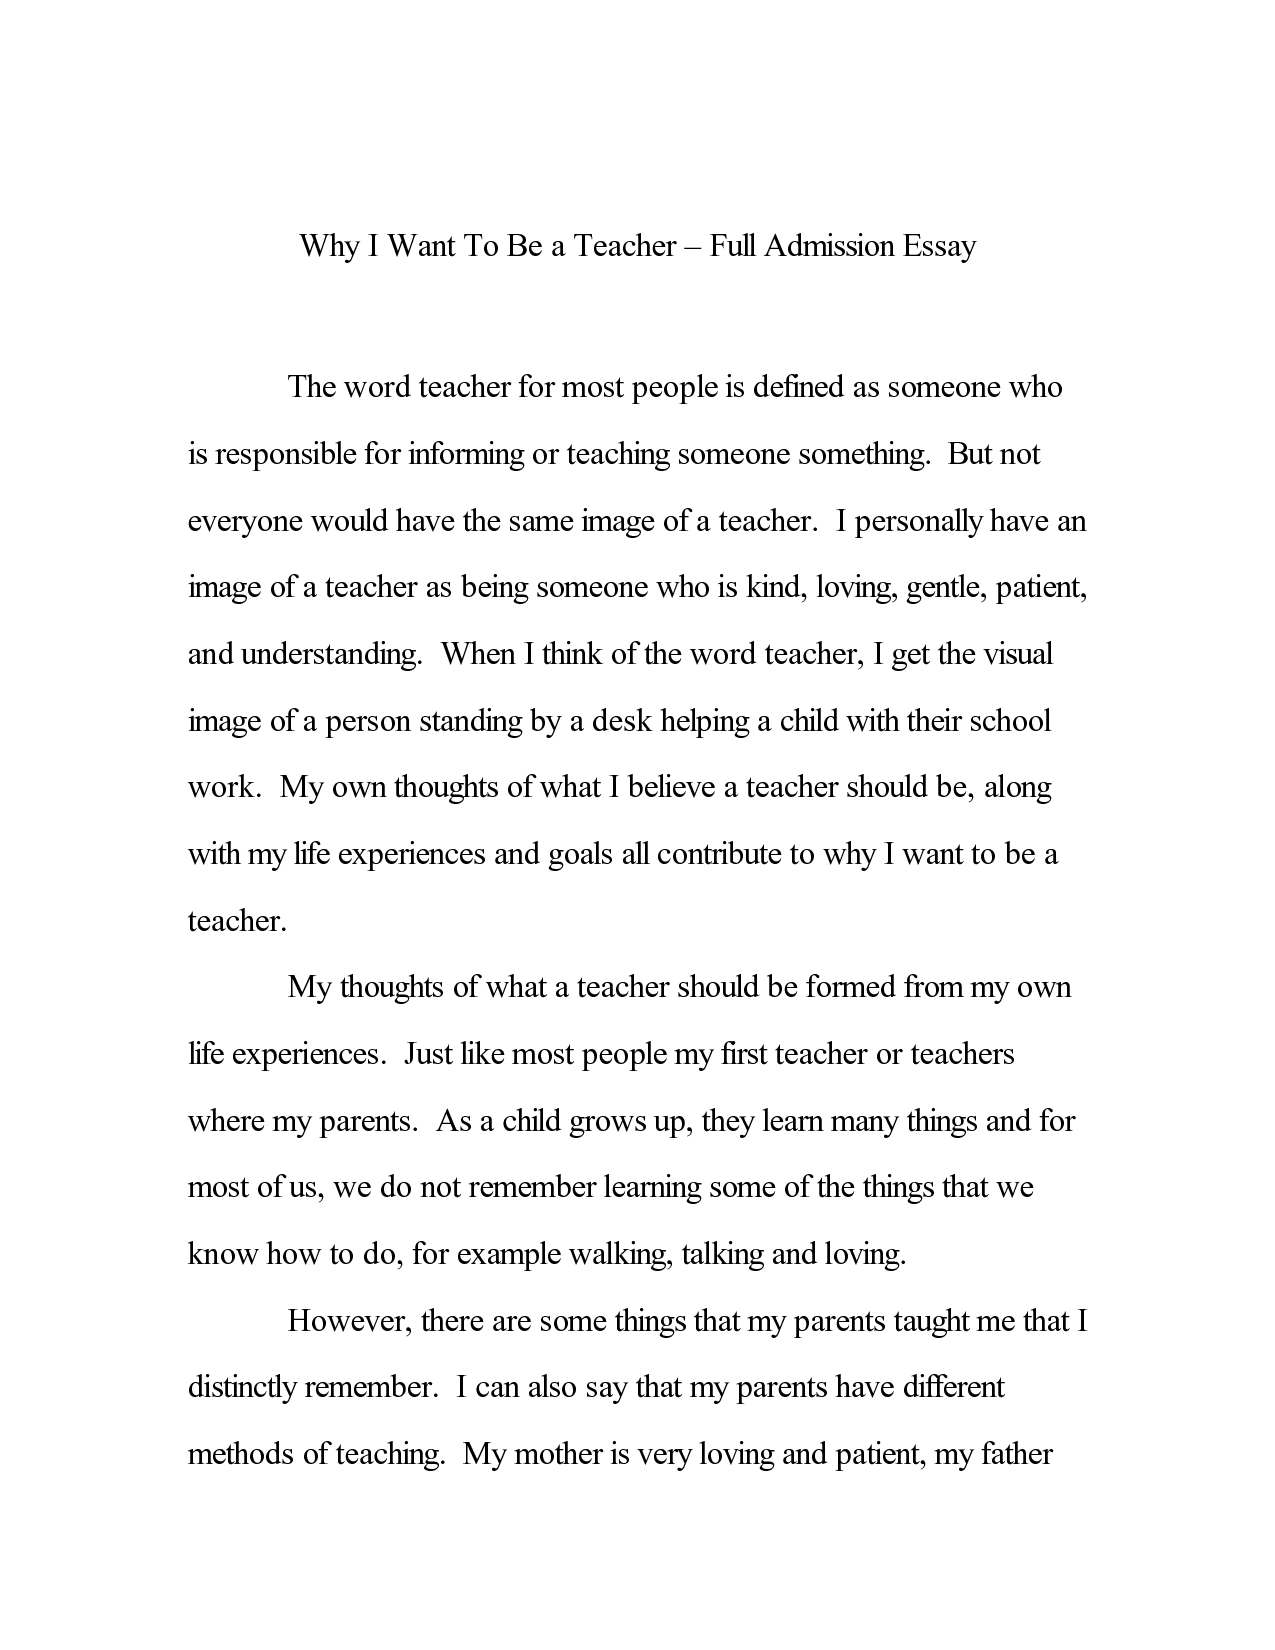 006 Zcwrpapbvx College Entry Essay Amazing Admissions About Autism Application Tips Admission Examples Ivy League Full